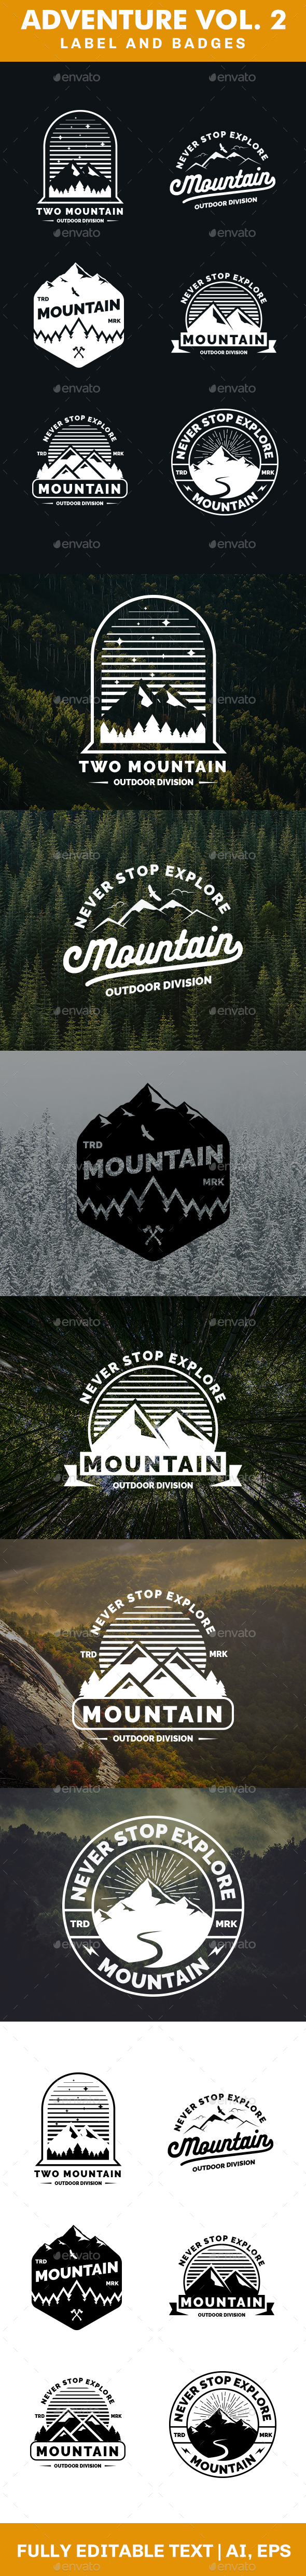 Adventure Logo and Badges Vol 2 - Badges & Stickers Web Elements